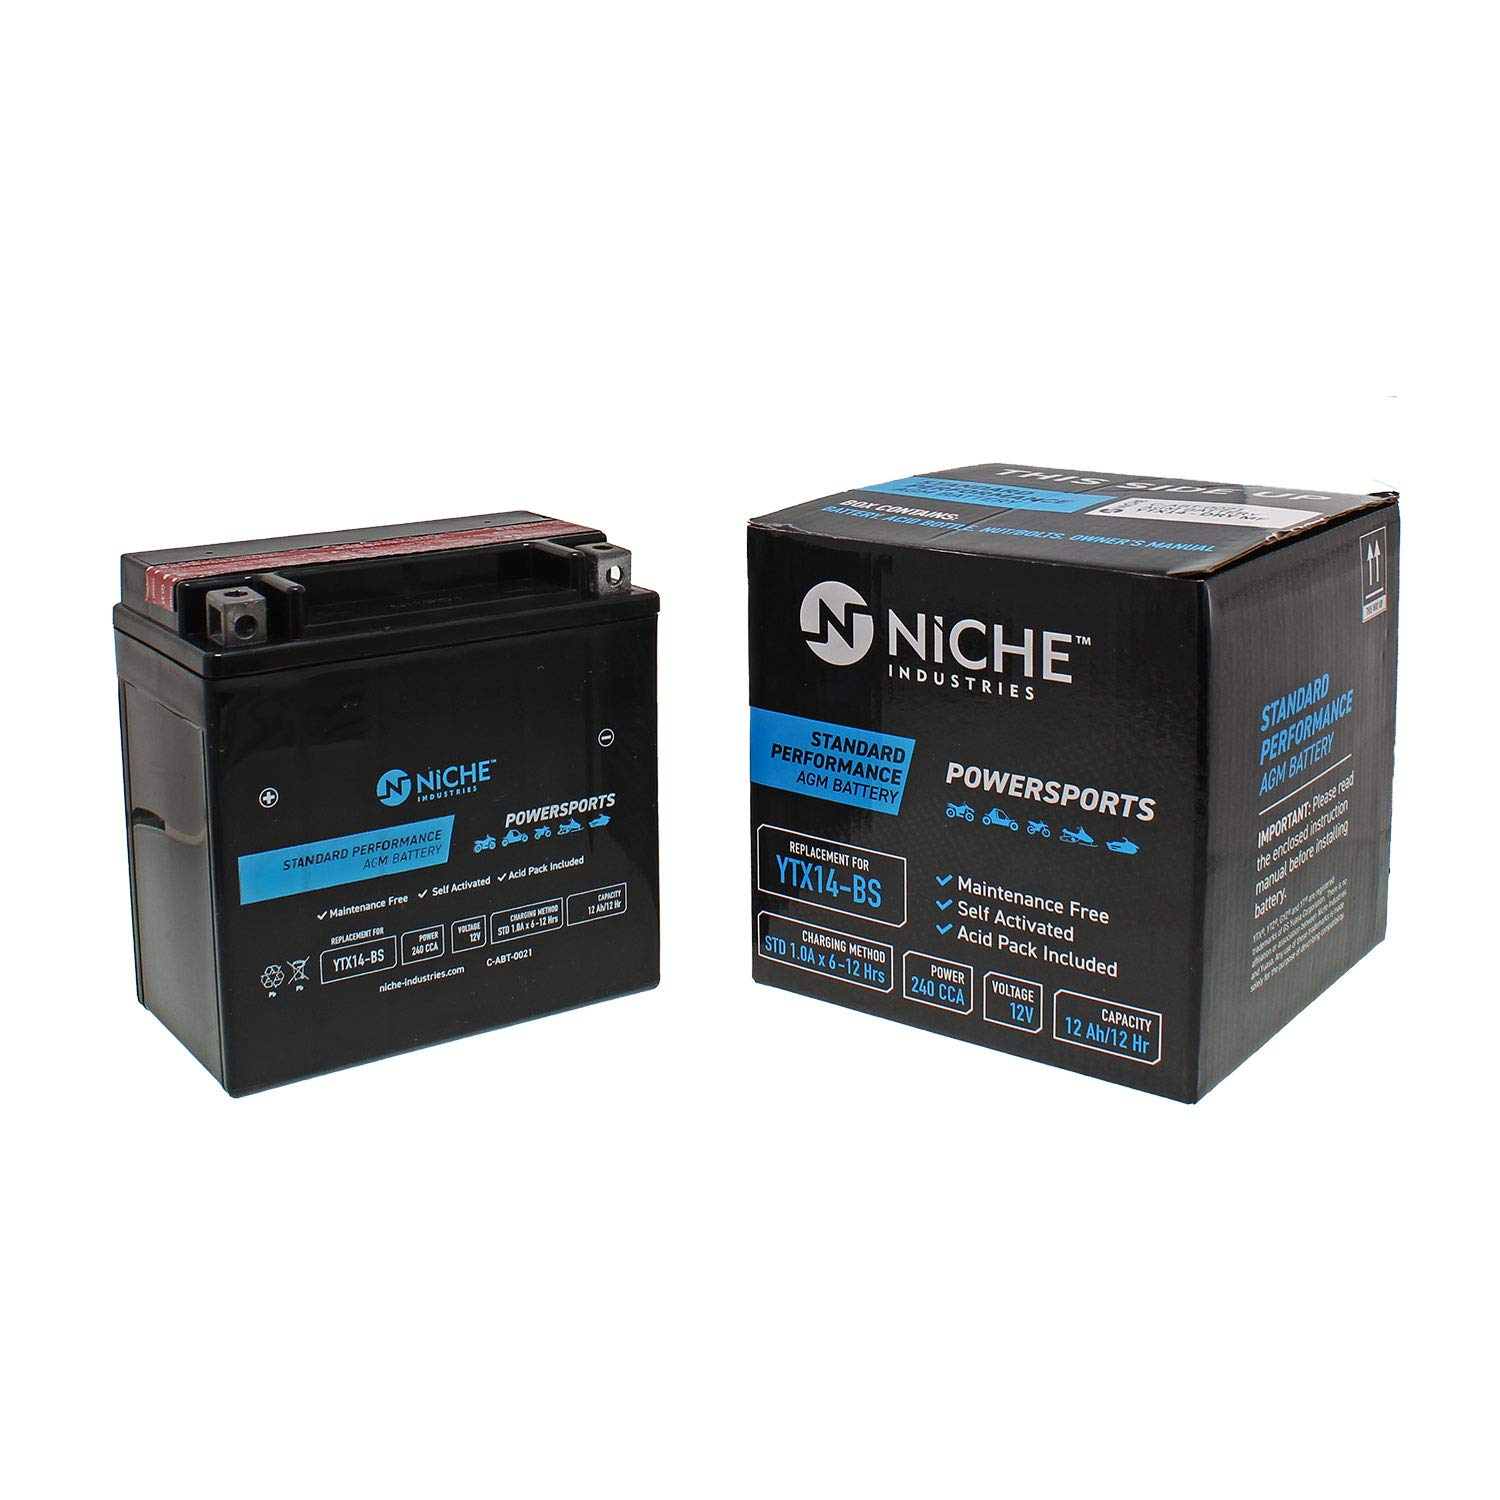 BMW For Honda Kawasaki /& more NICHE Performance Series Replacement AGM Battery for YTX14-BS 12V ATV 240CCA Motorcycle Self Activated Maintenance Free Sealed Scooter Rechargeable